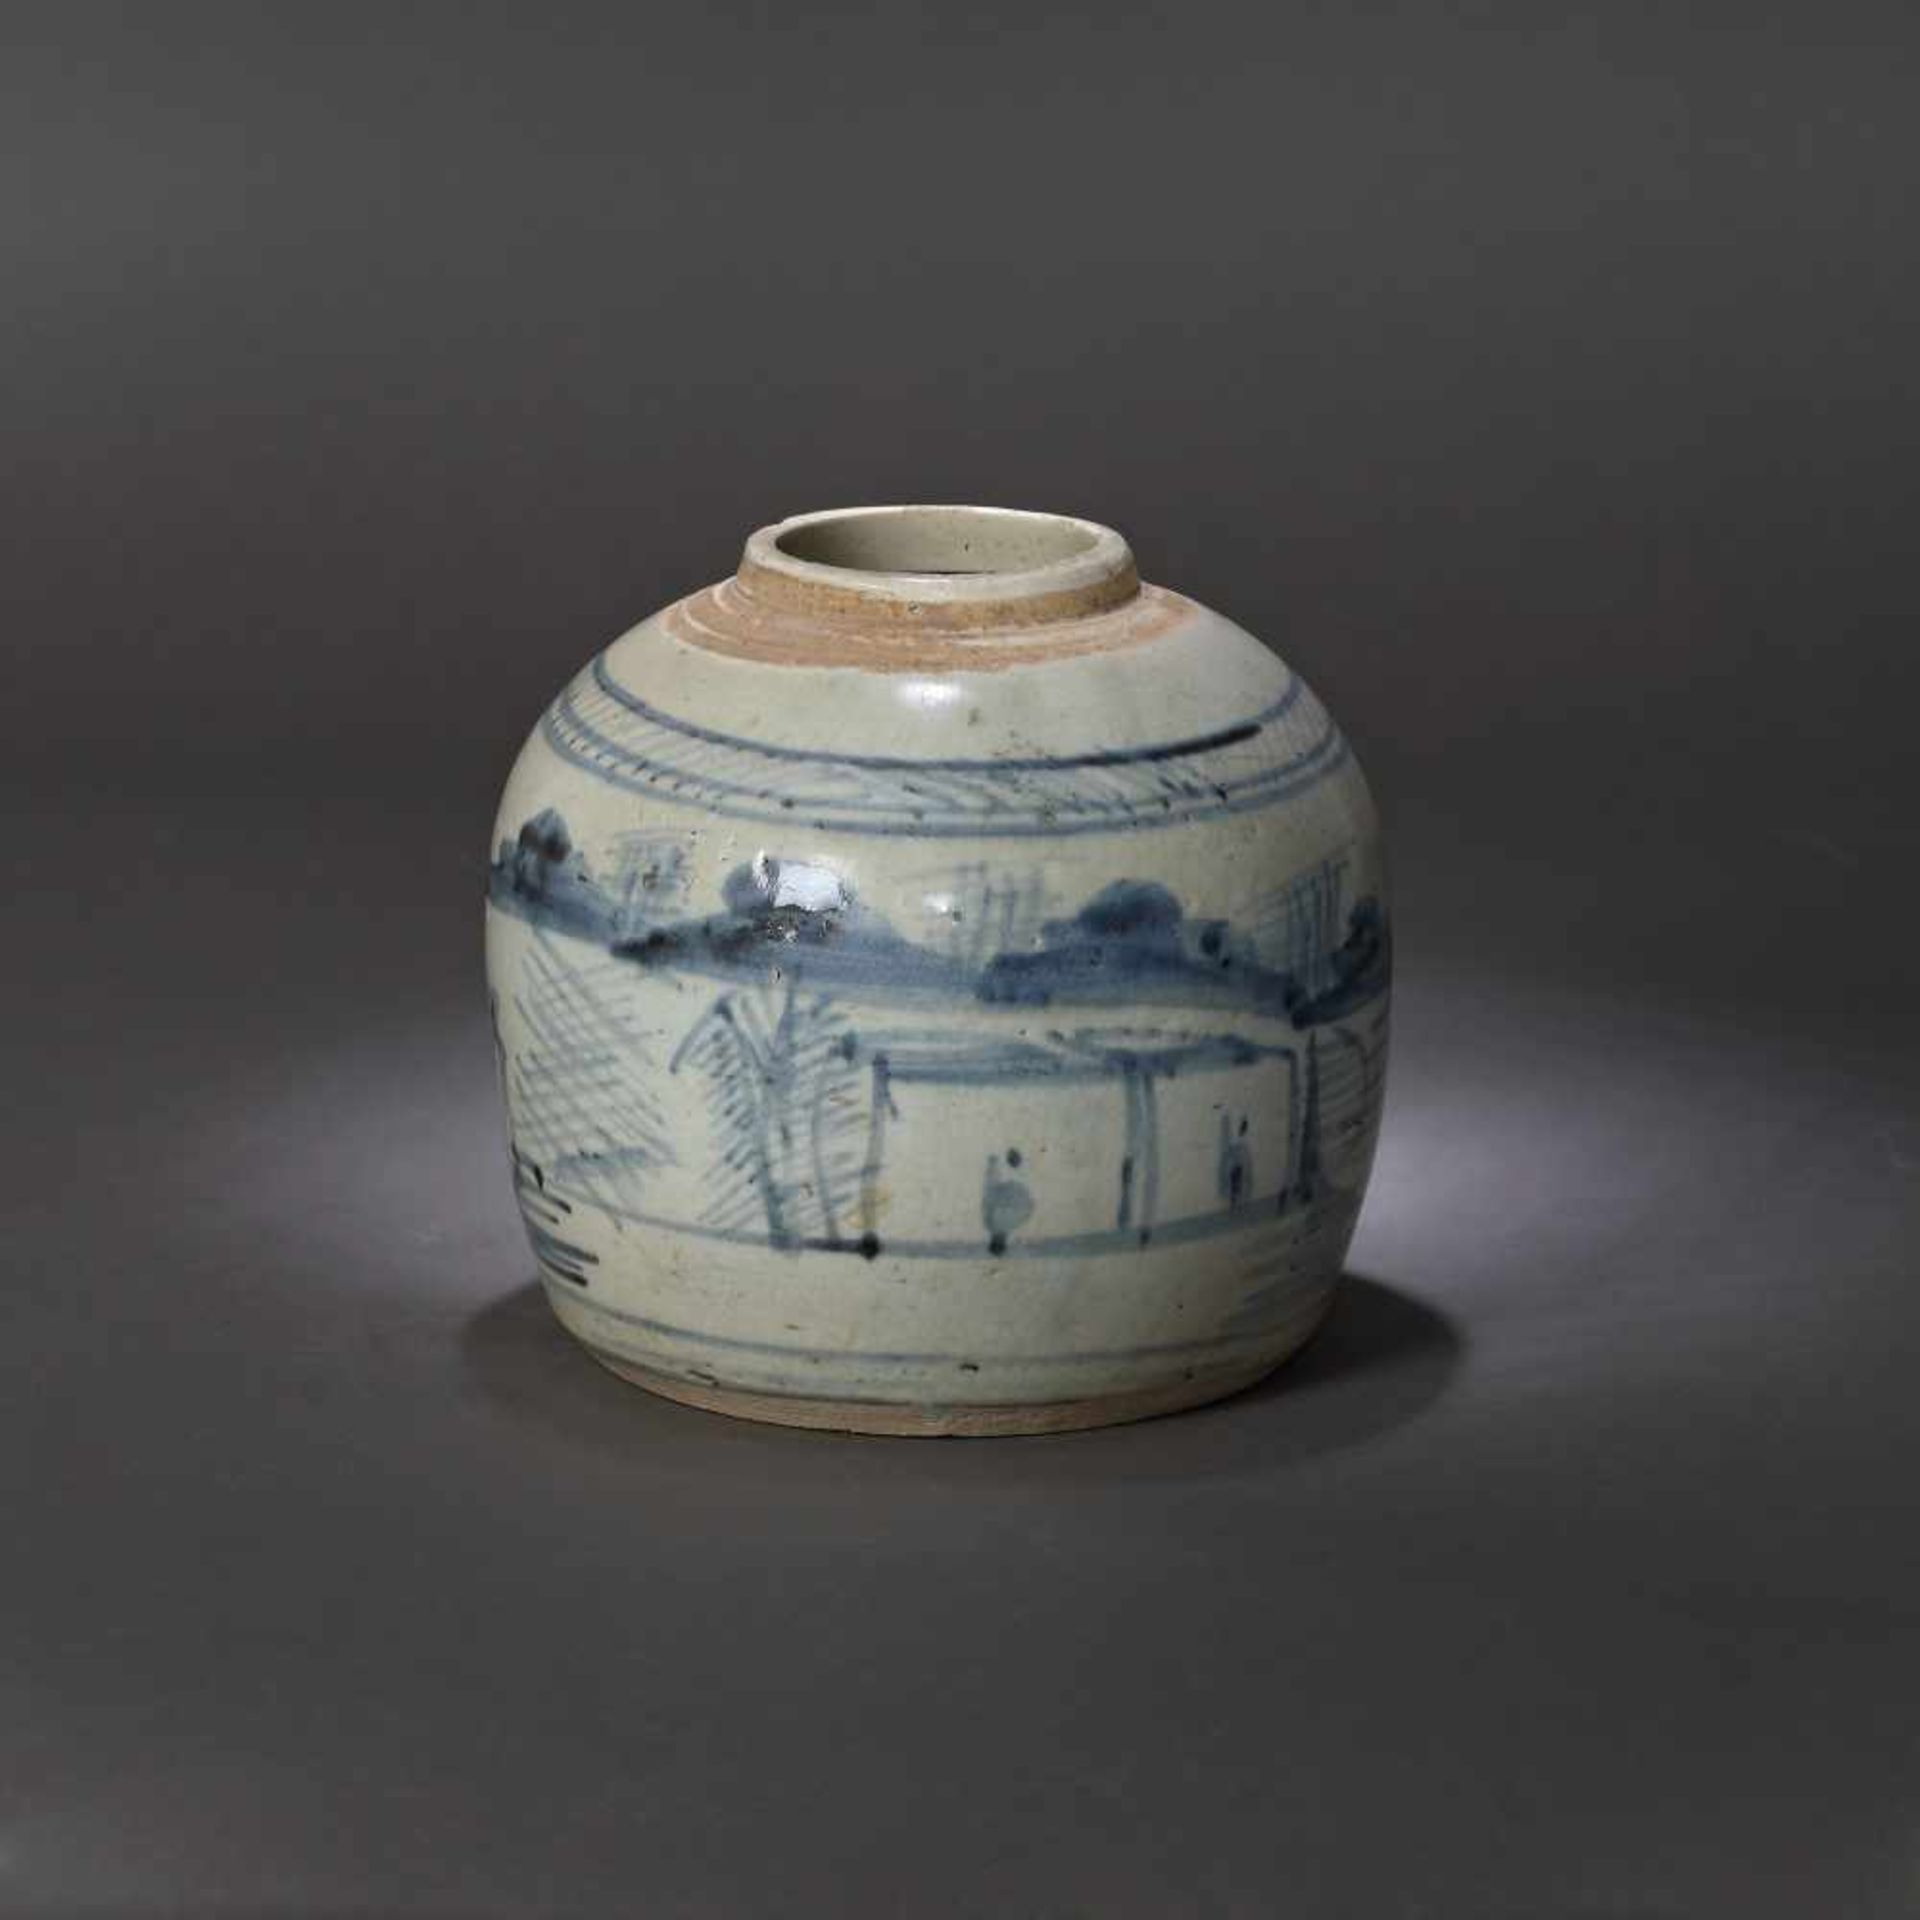 Ginger vessel, decorated with traditional landscapes, possibly 17th century